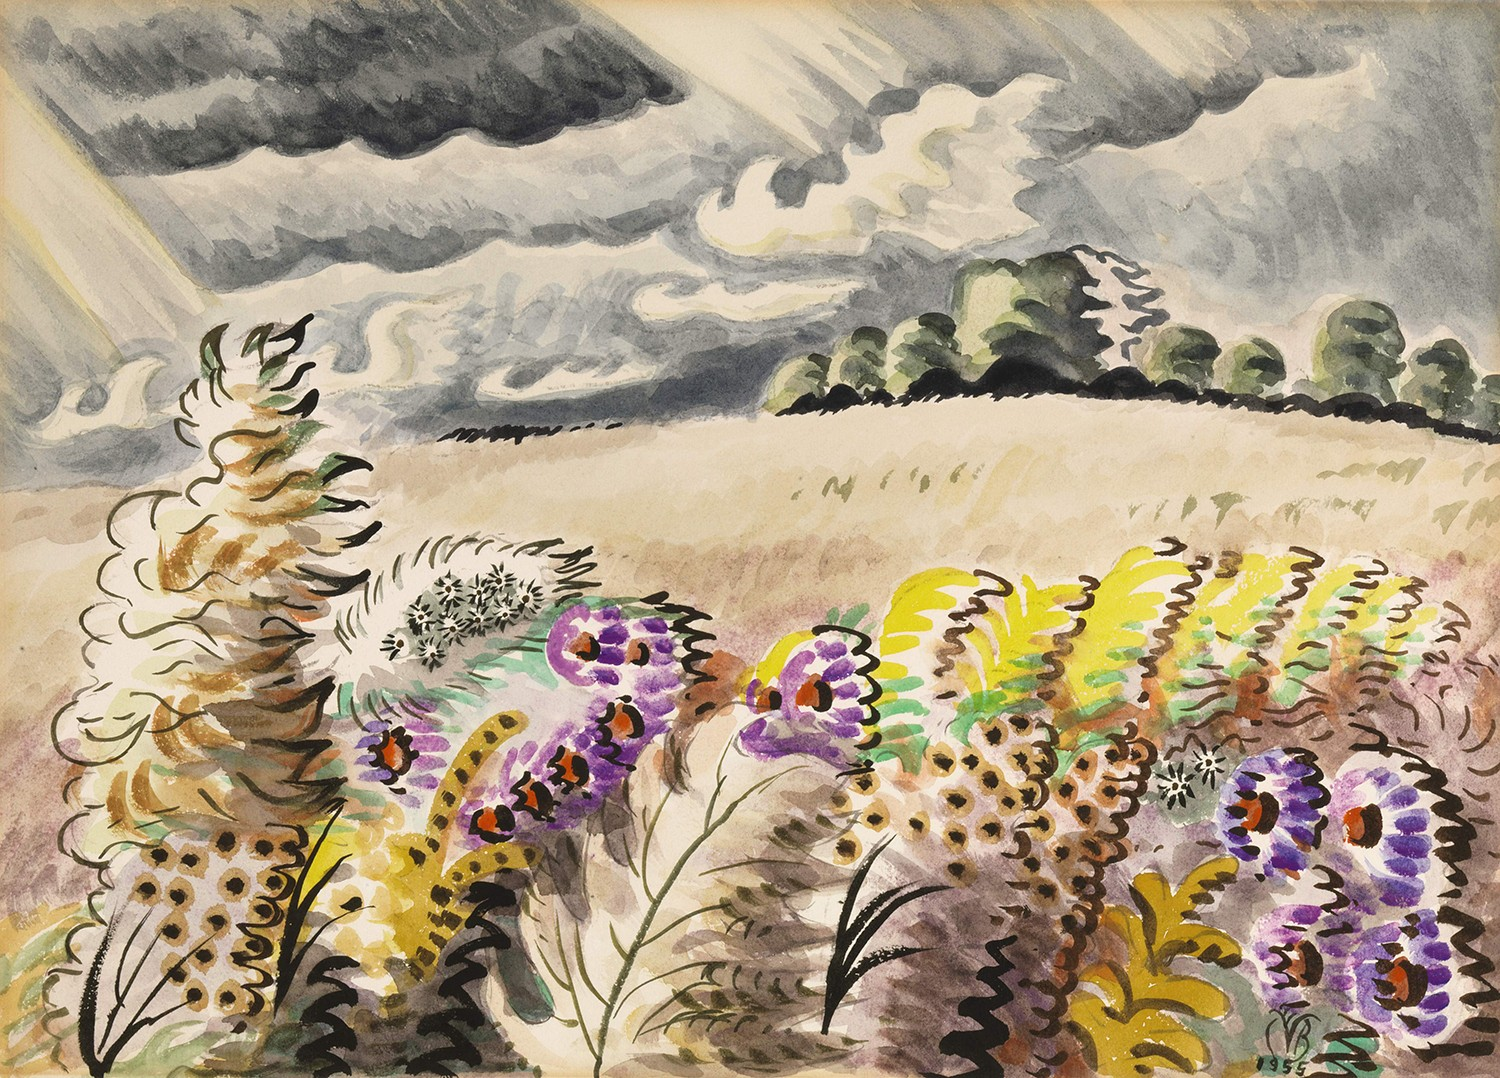 In this colorful, work, flowers and bushes can be seen at the bottom of a hill, under a sky of grey clouds